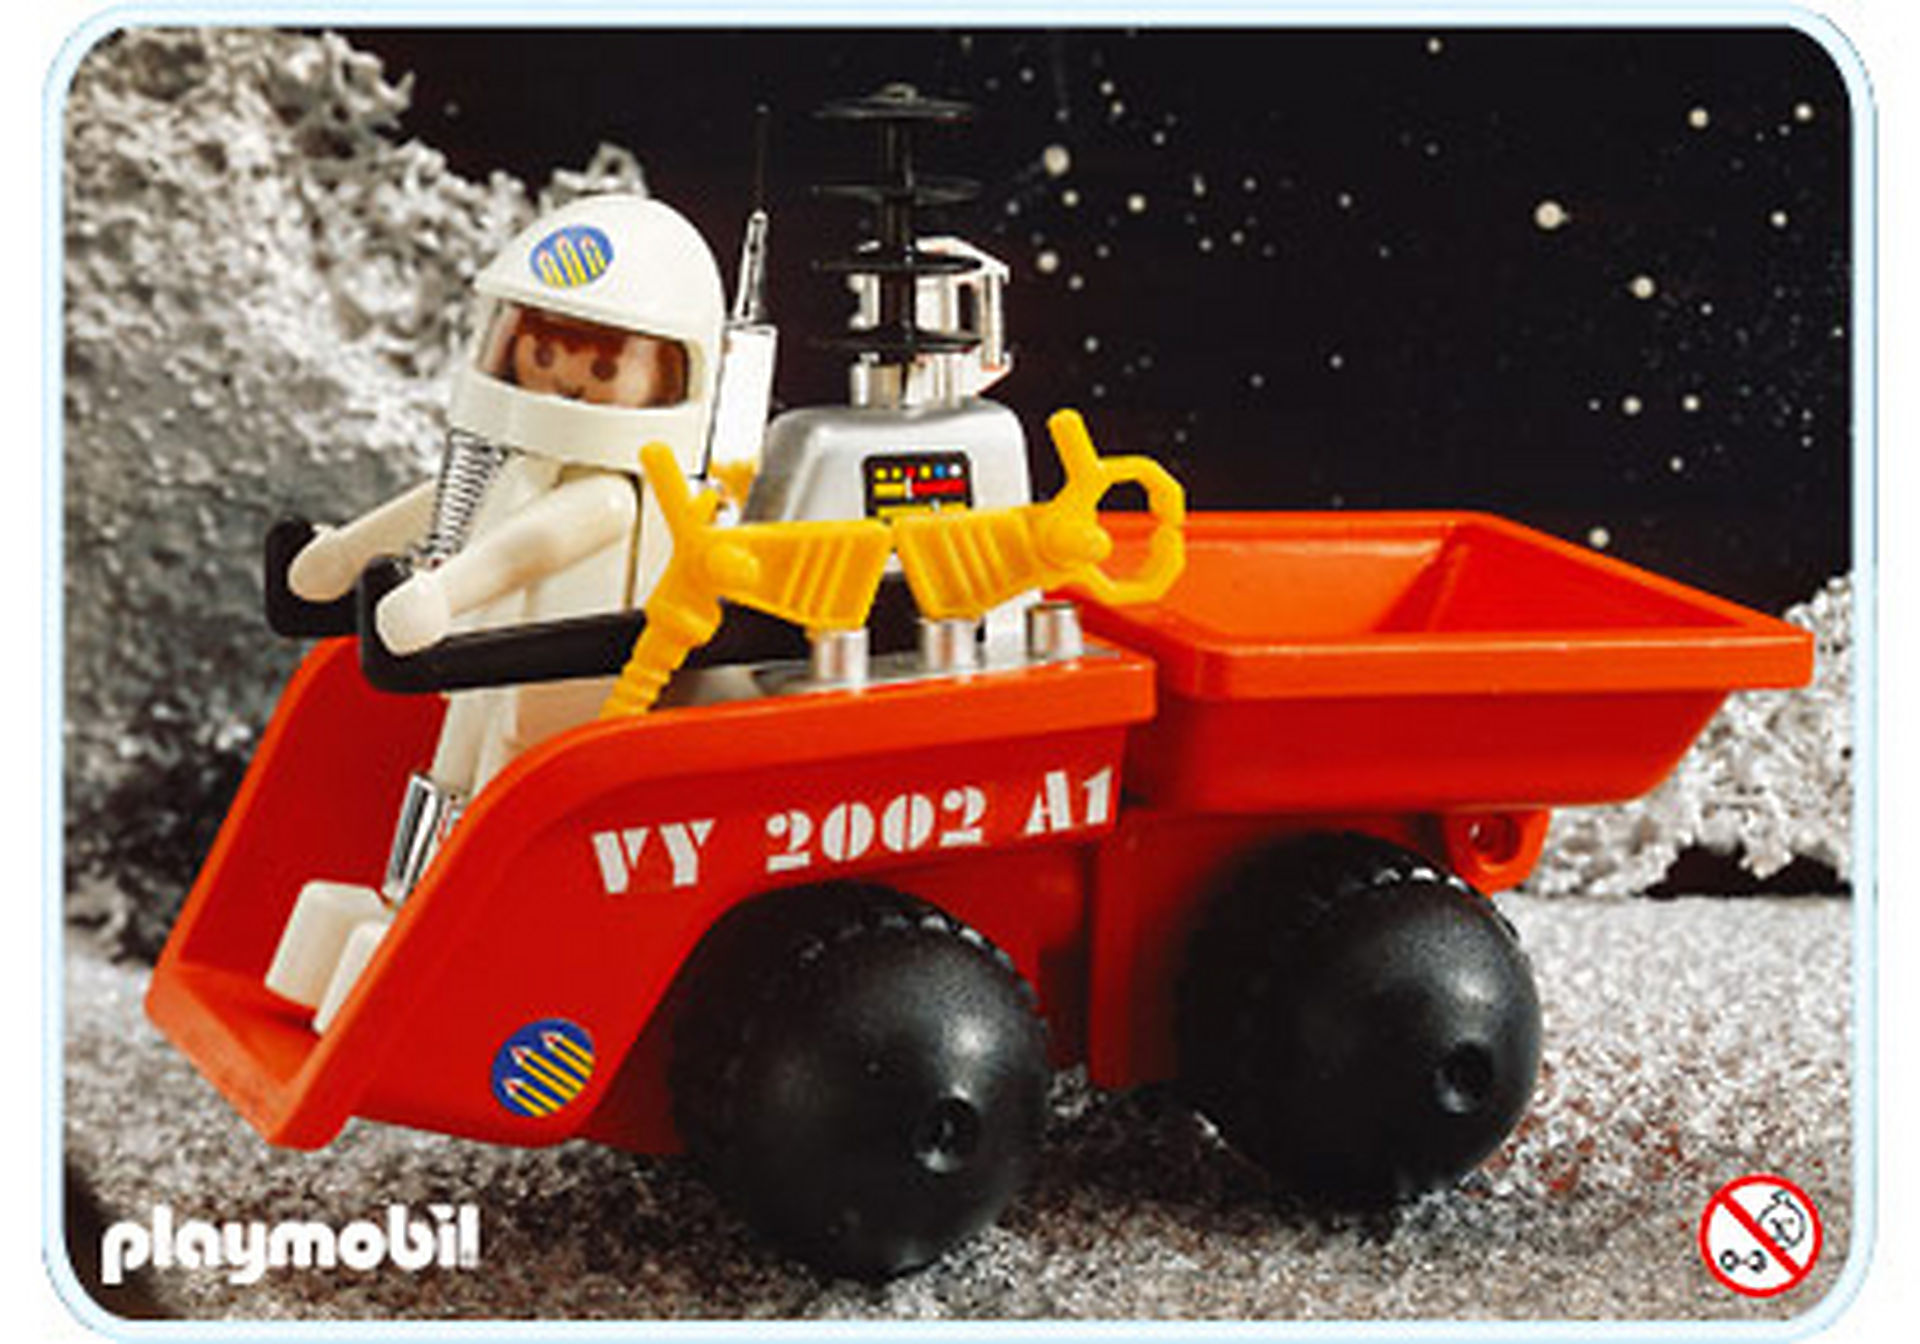 http://media.playmobil.com/i/playmobil/3558-A_product_detail/Tracteur spatial et benne